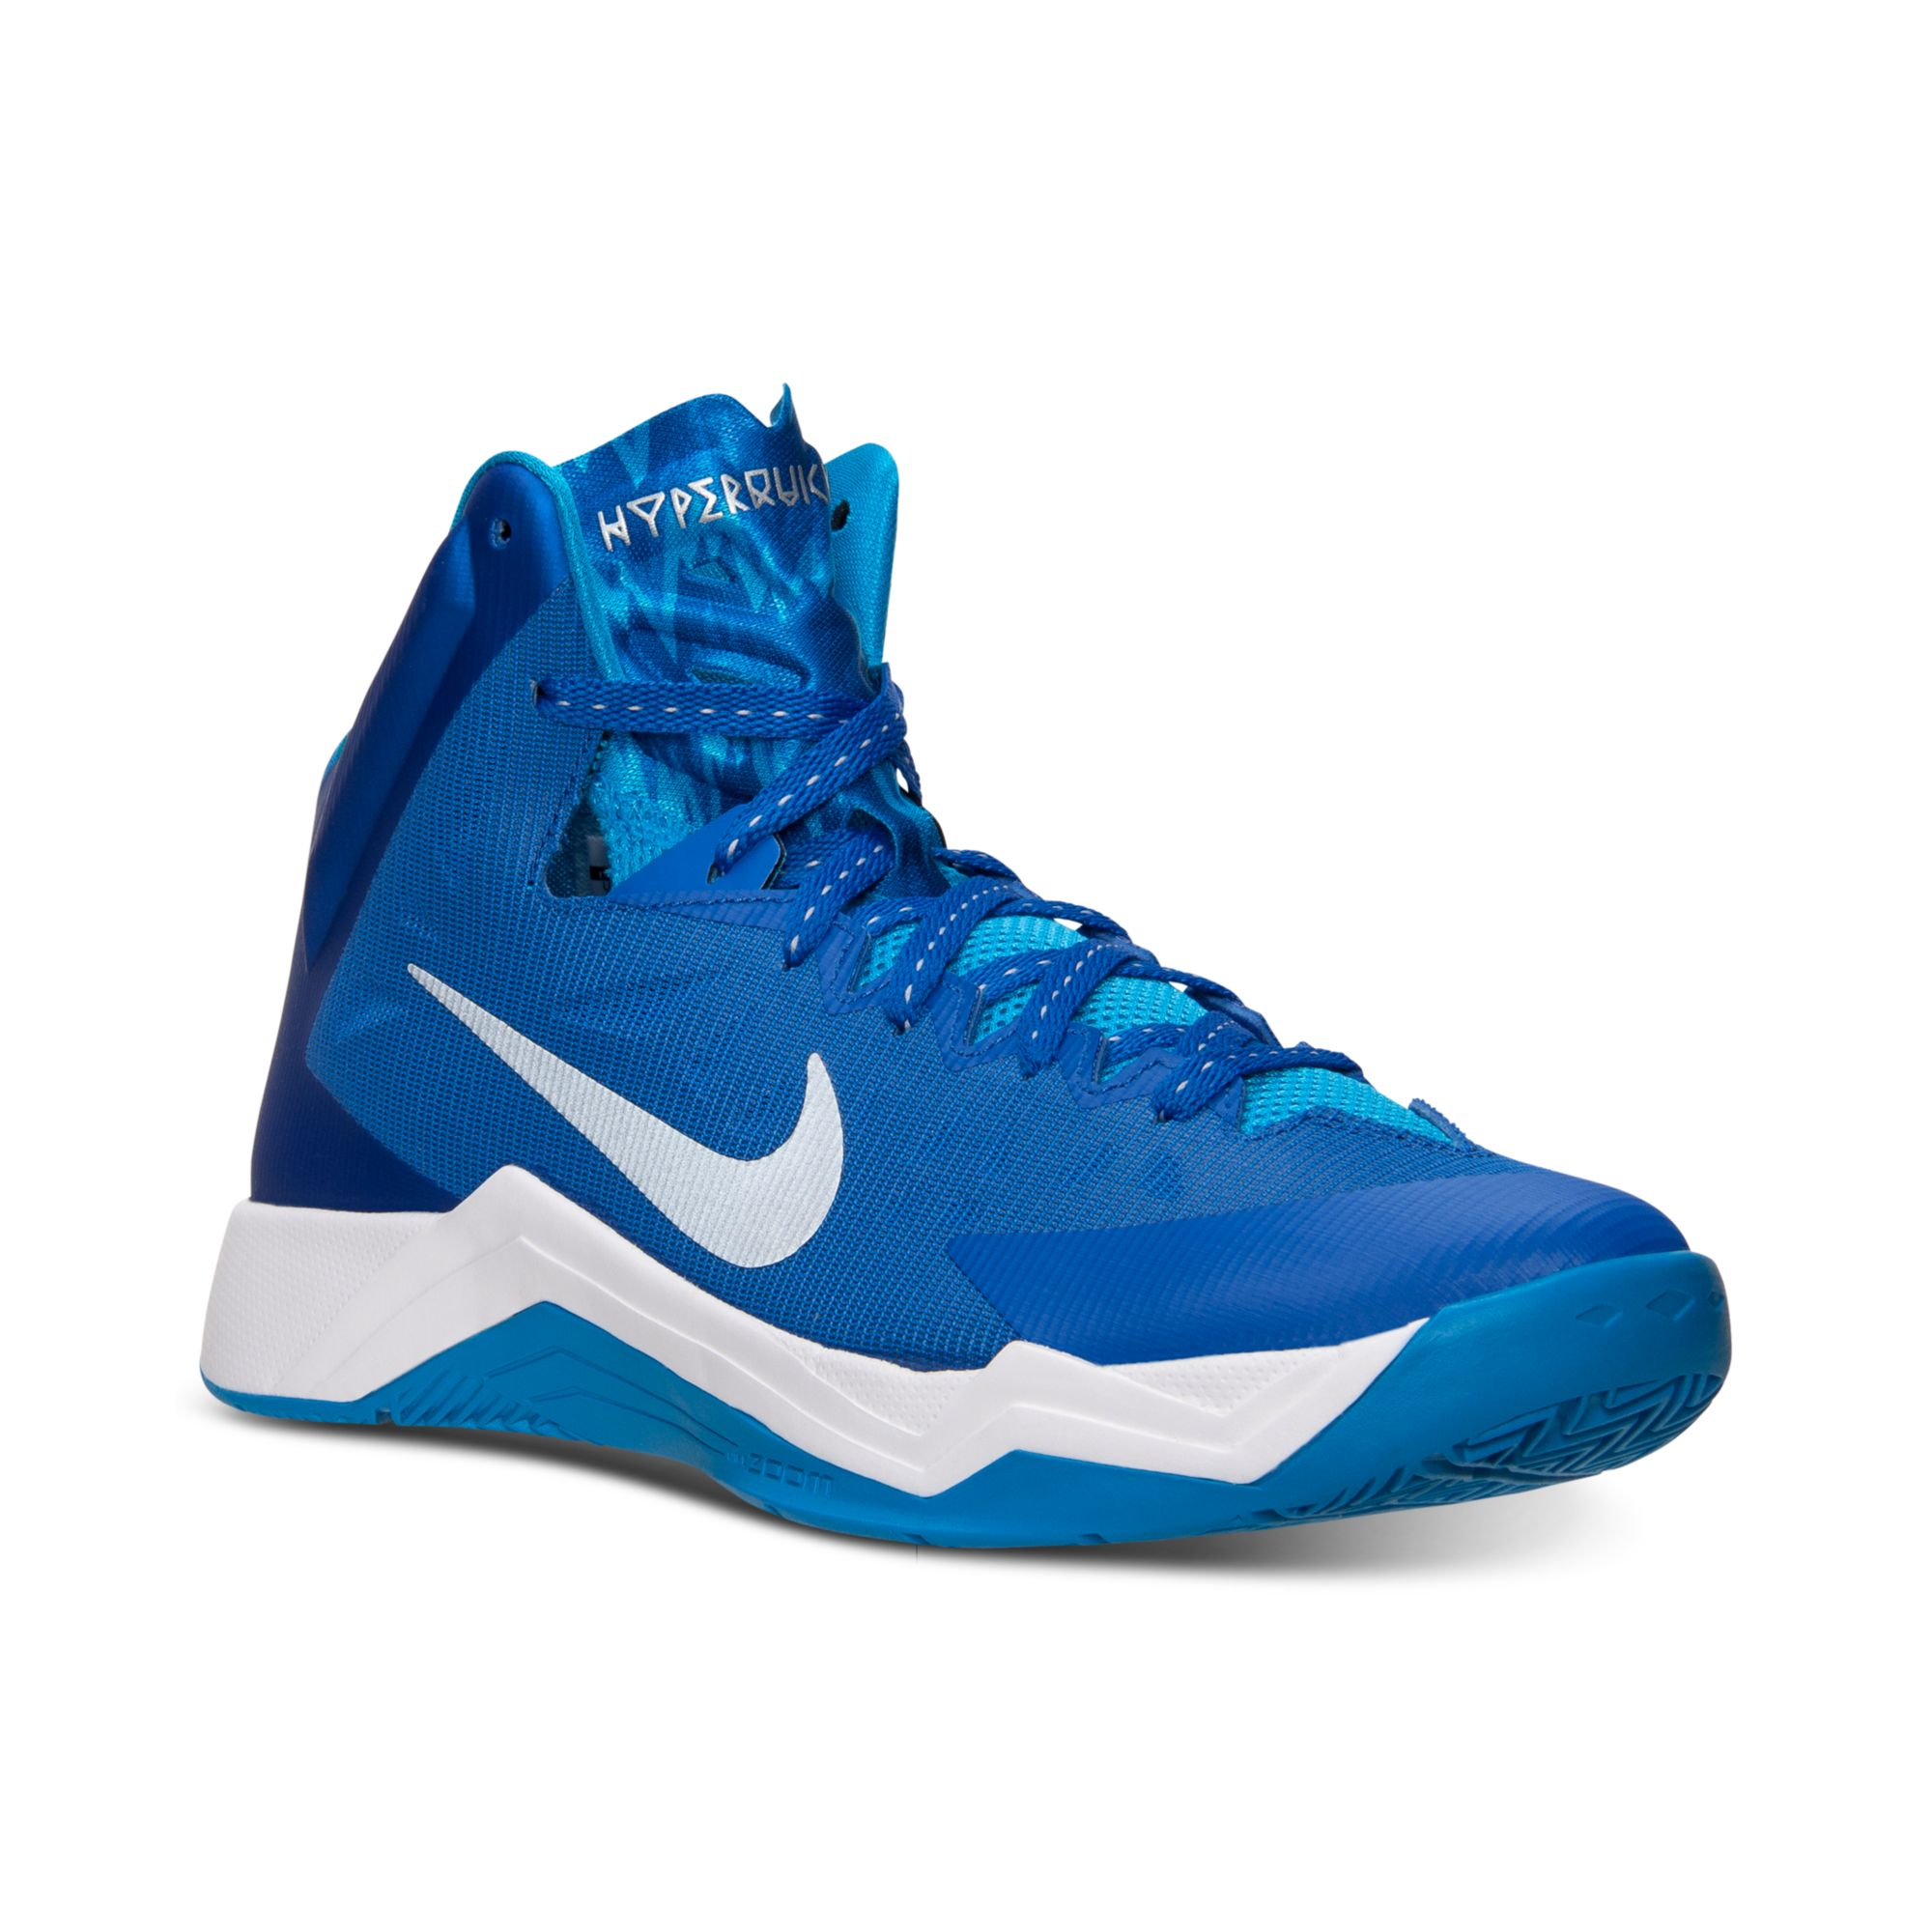 new york 3966b 3e02a ... Lyst - Nike Mens Hyper Quickness Basketball Sneakers From Fi pre order  c6963 2e1d6 ...